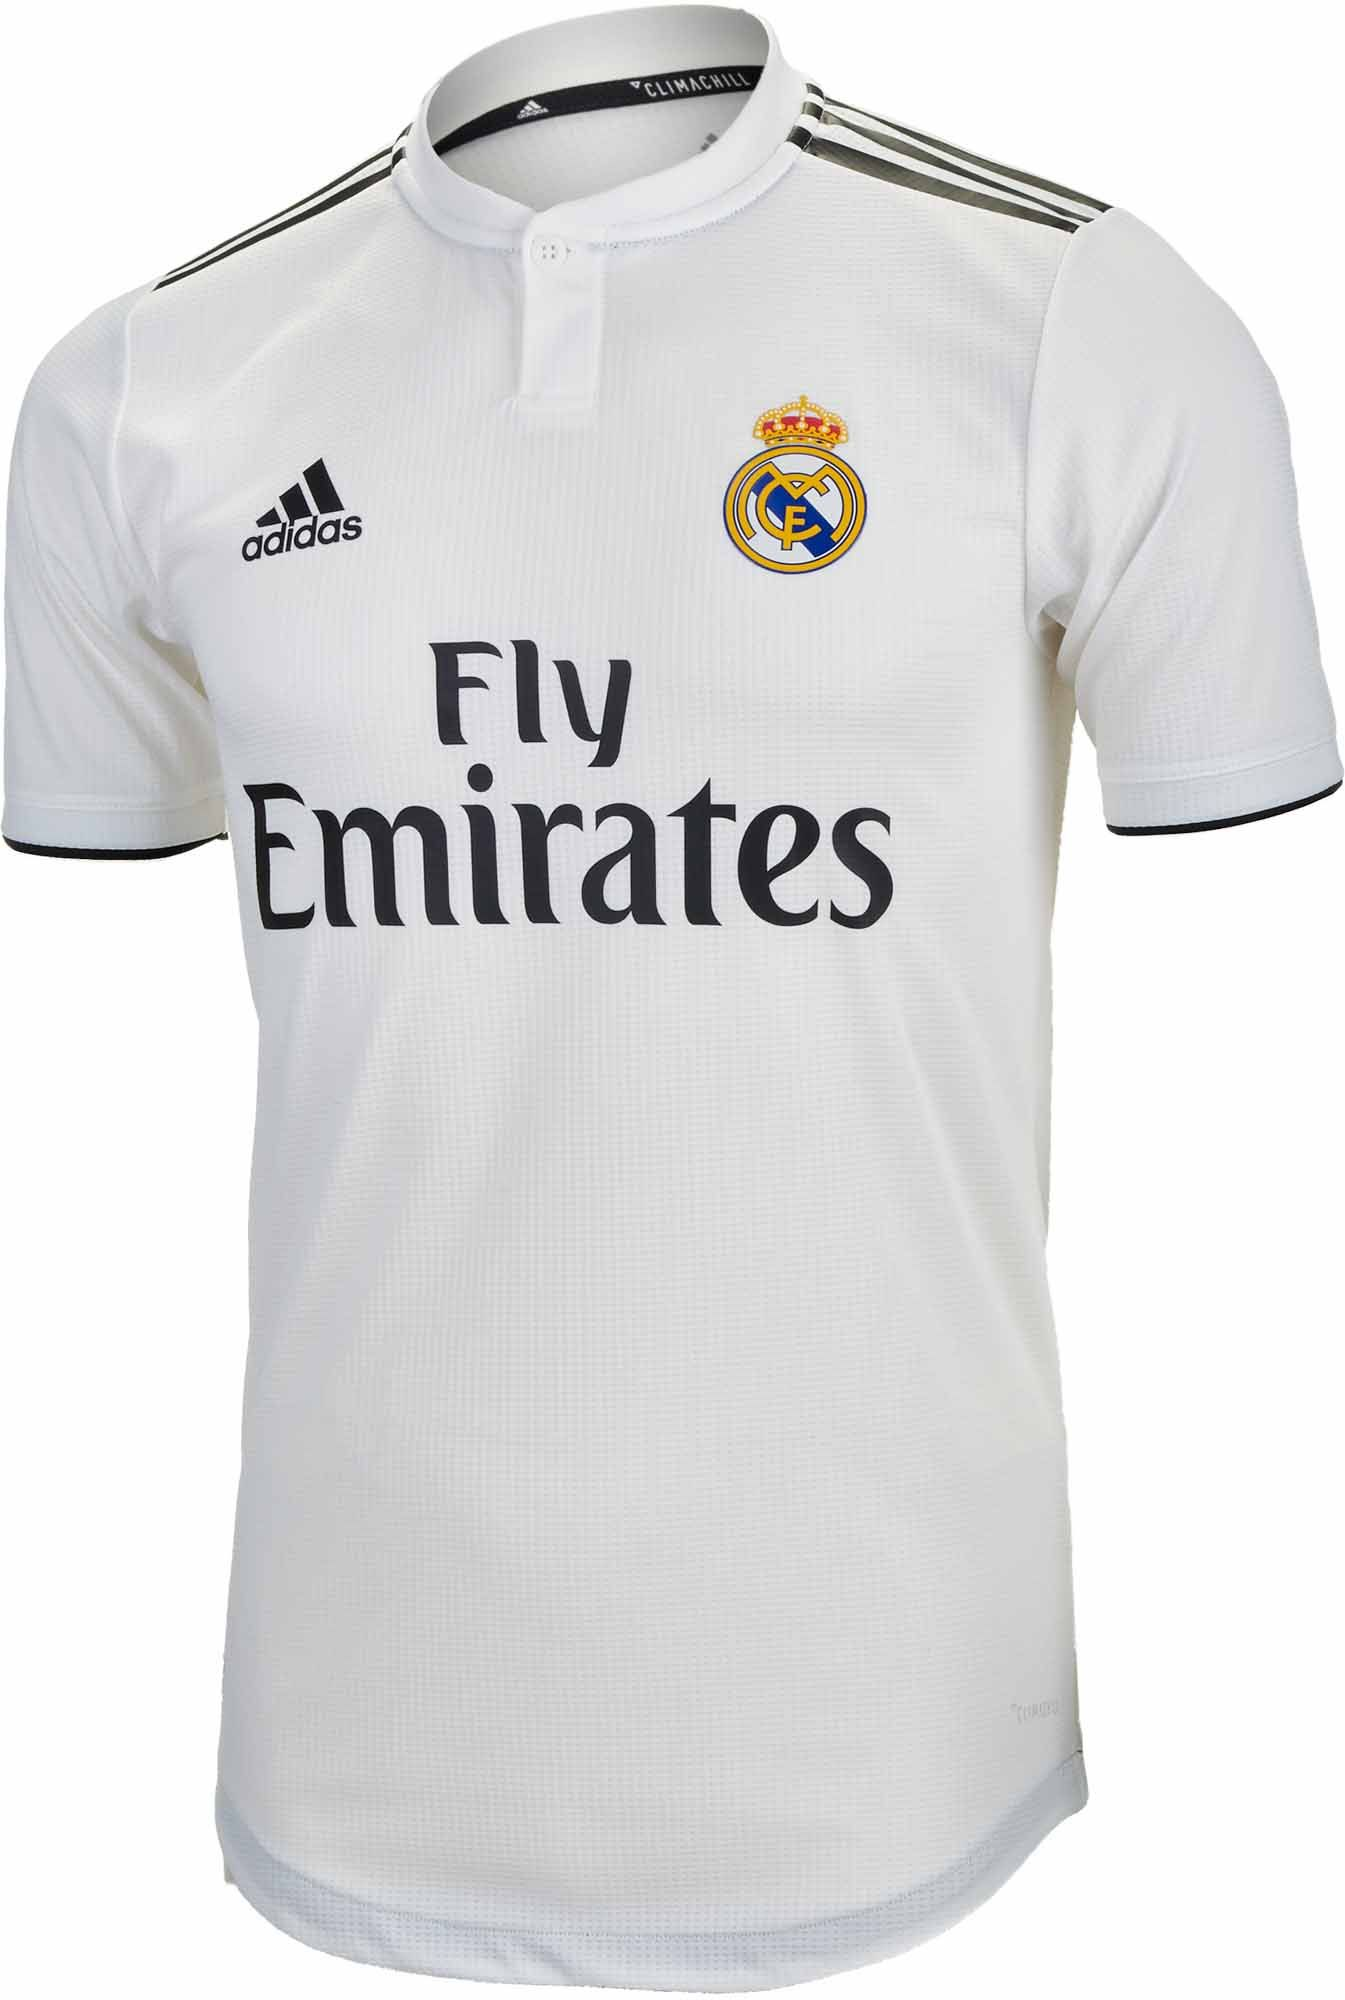 1cf961c48a7 Buy the adidas Real Madrid Home Authentic Jersey 2018-19 and rock these  sweet threads all season long in support of Los Blancos!